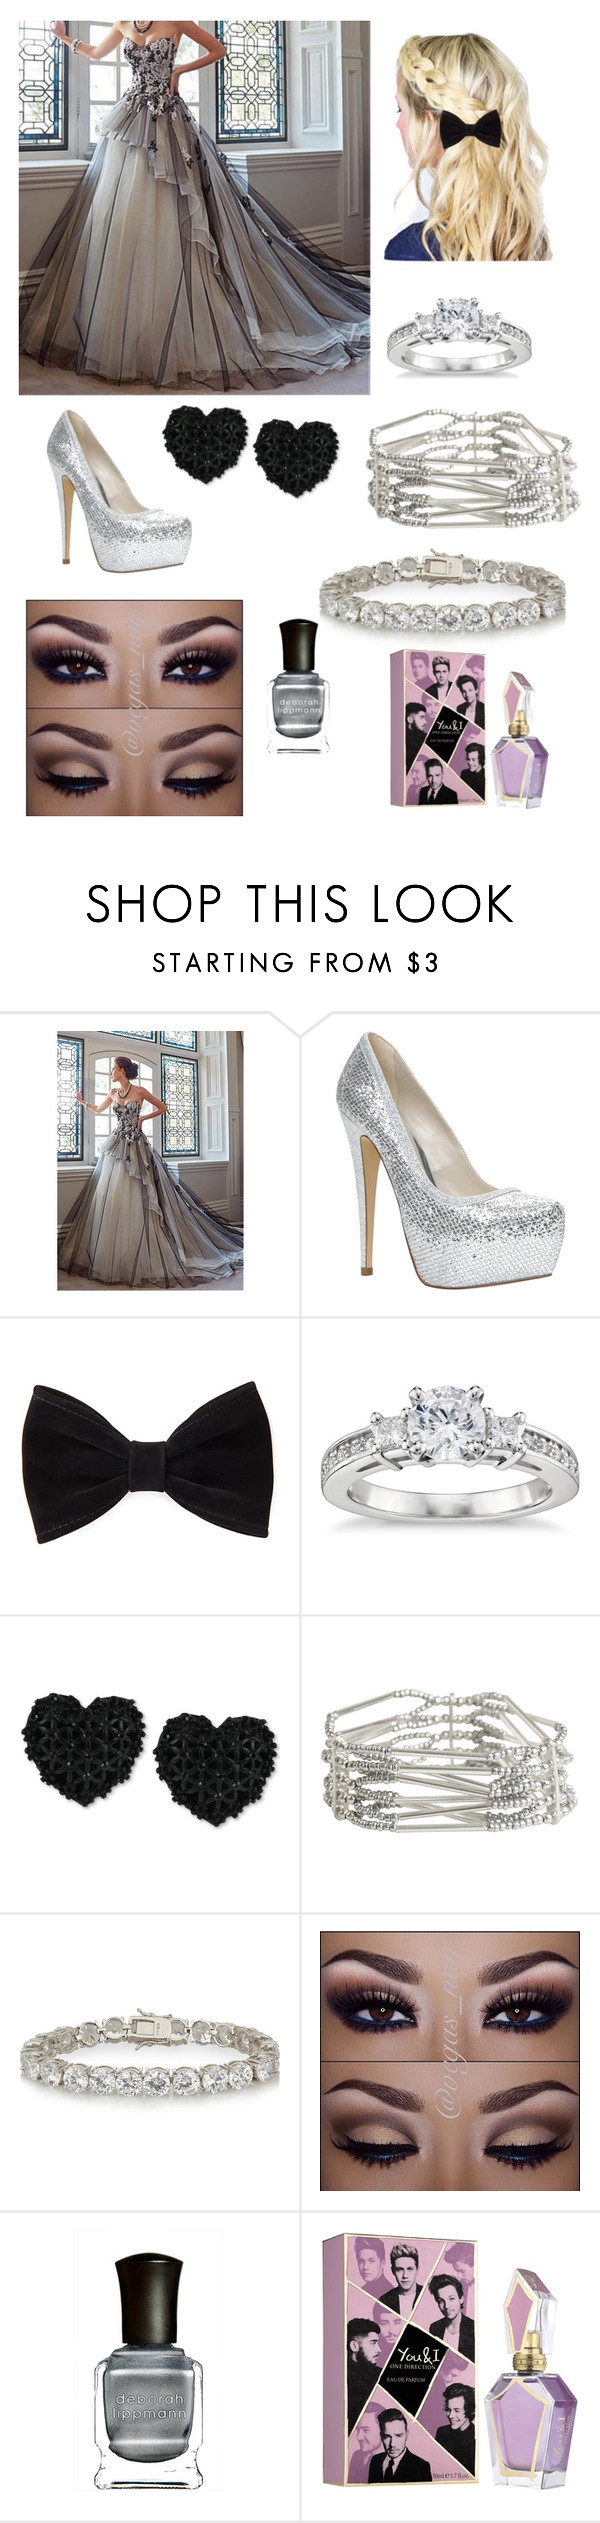 """""""grey"""" by littlelmia ❤ liked on Polyvore featuring ALDO, Forever 21, Blue Nile, Betsey Johnson, Pieces, Kenneth Jay Lane, Deborah Lippmann, women's clothing, women and female"""